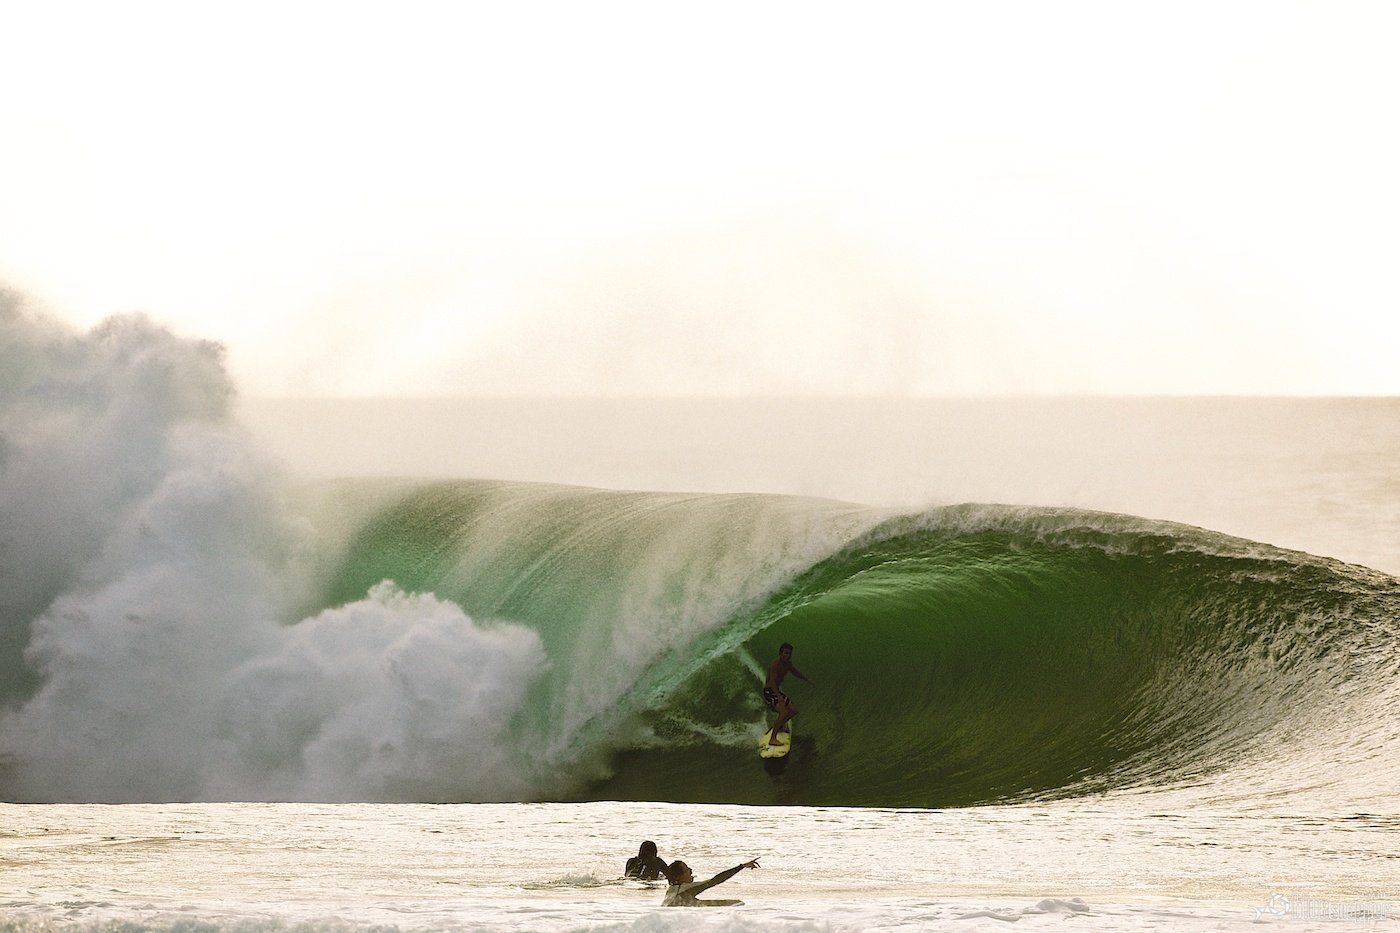 bluesnapper.com.au's photo of Pipeline & Backdoor